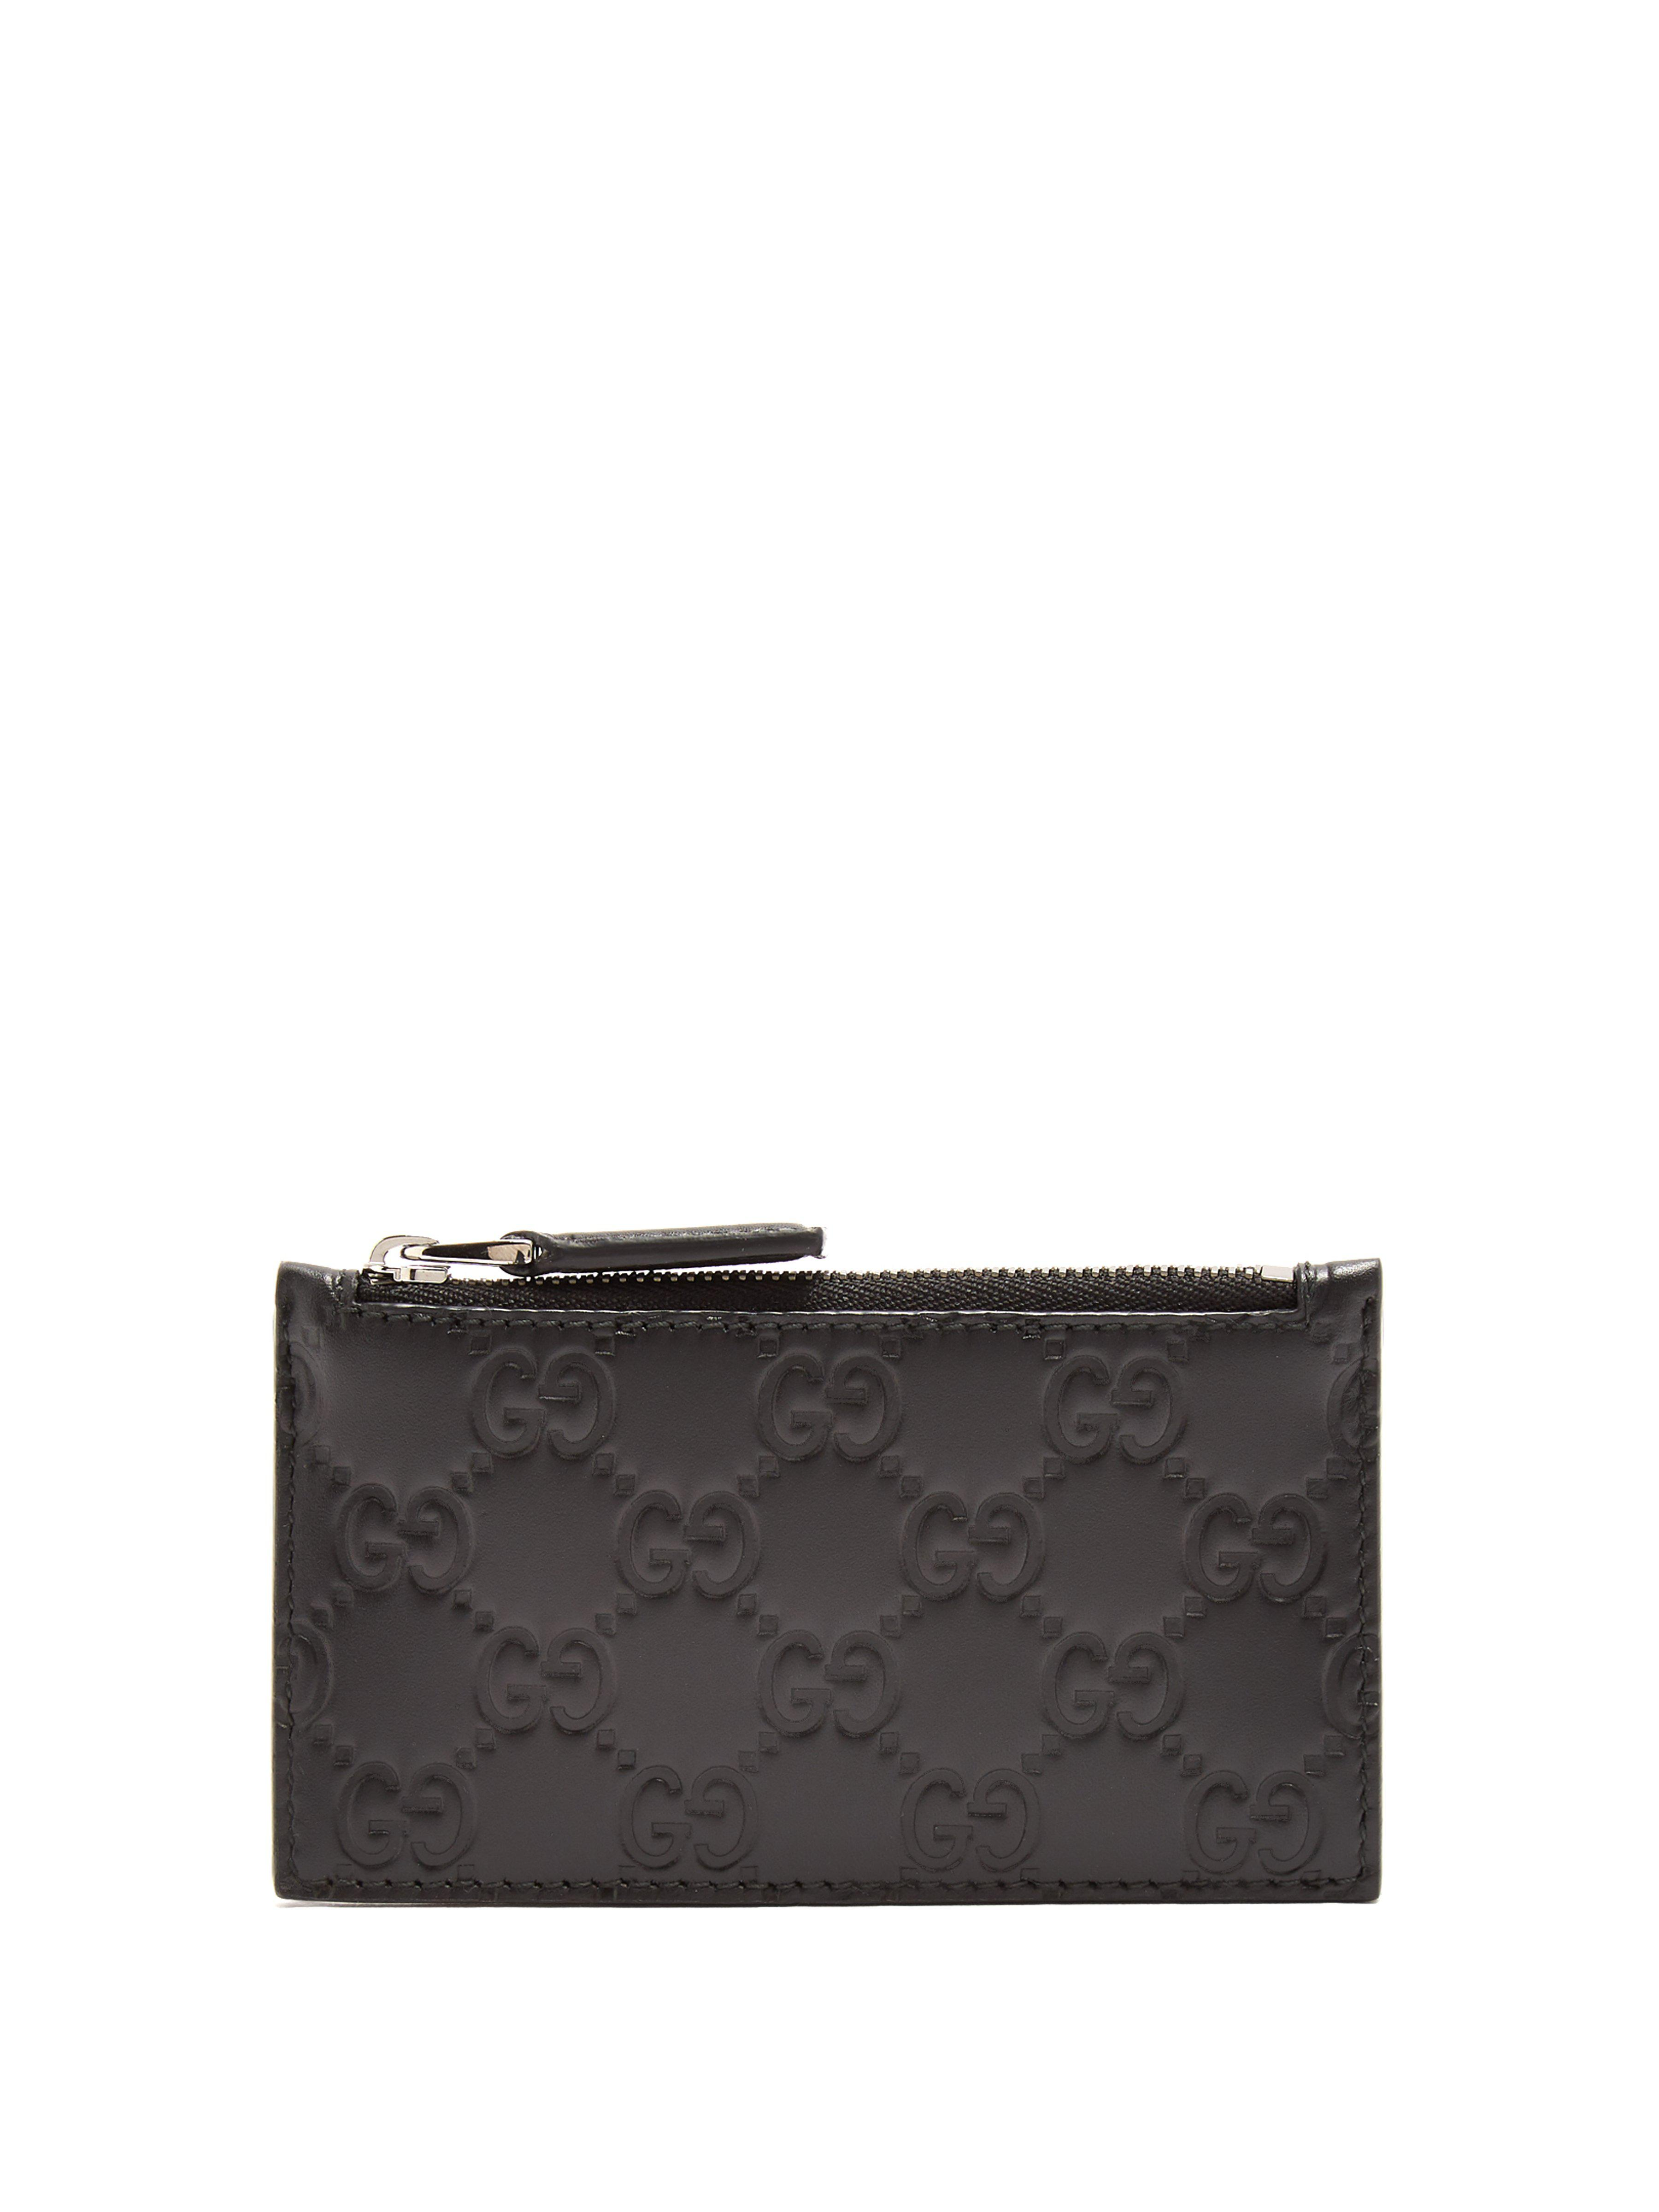 bfbdb964c6a2 Gucci Gg-debossed Leather Cardholder in Black for Men - Lyst